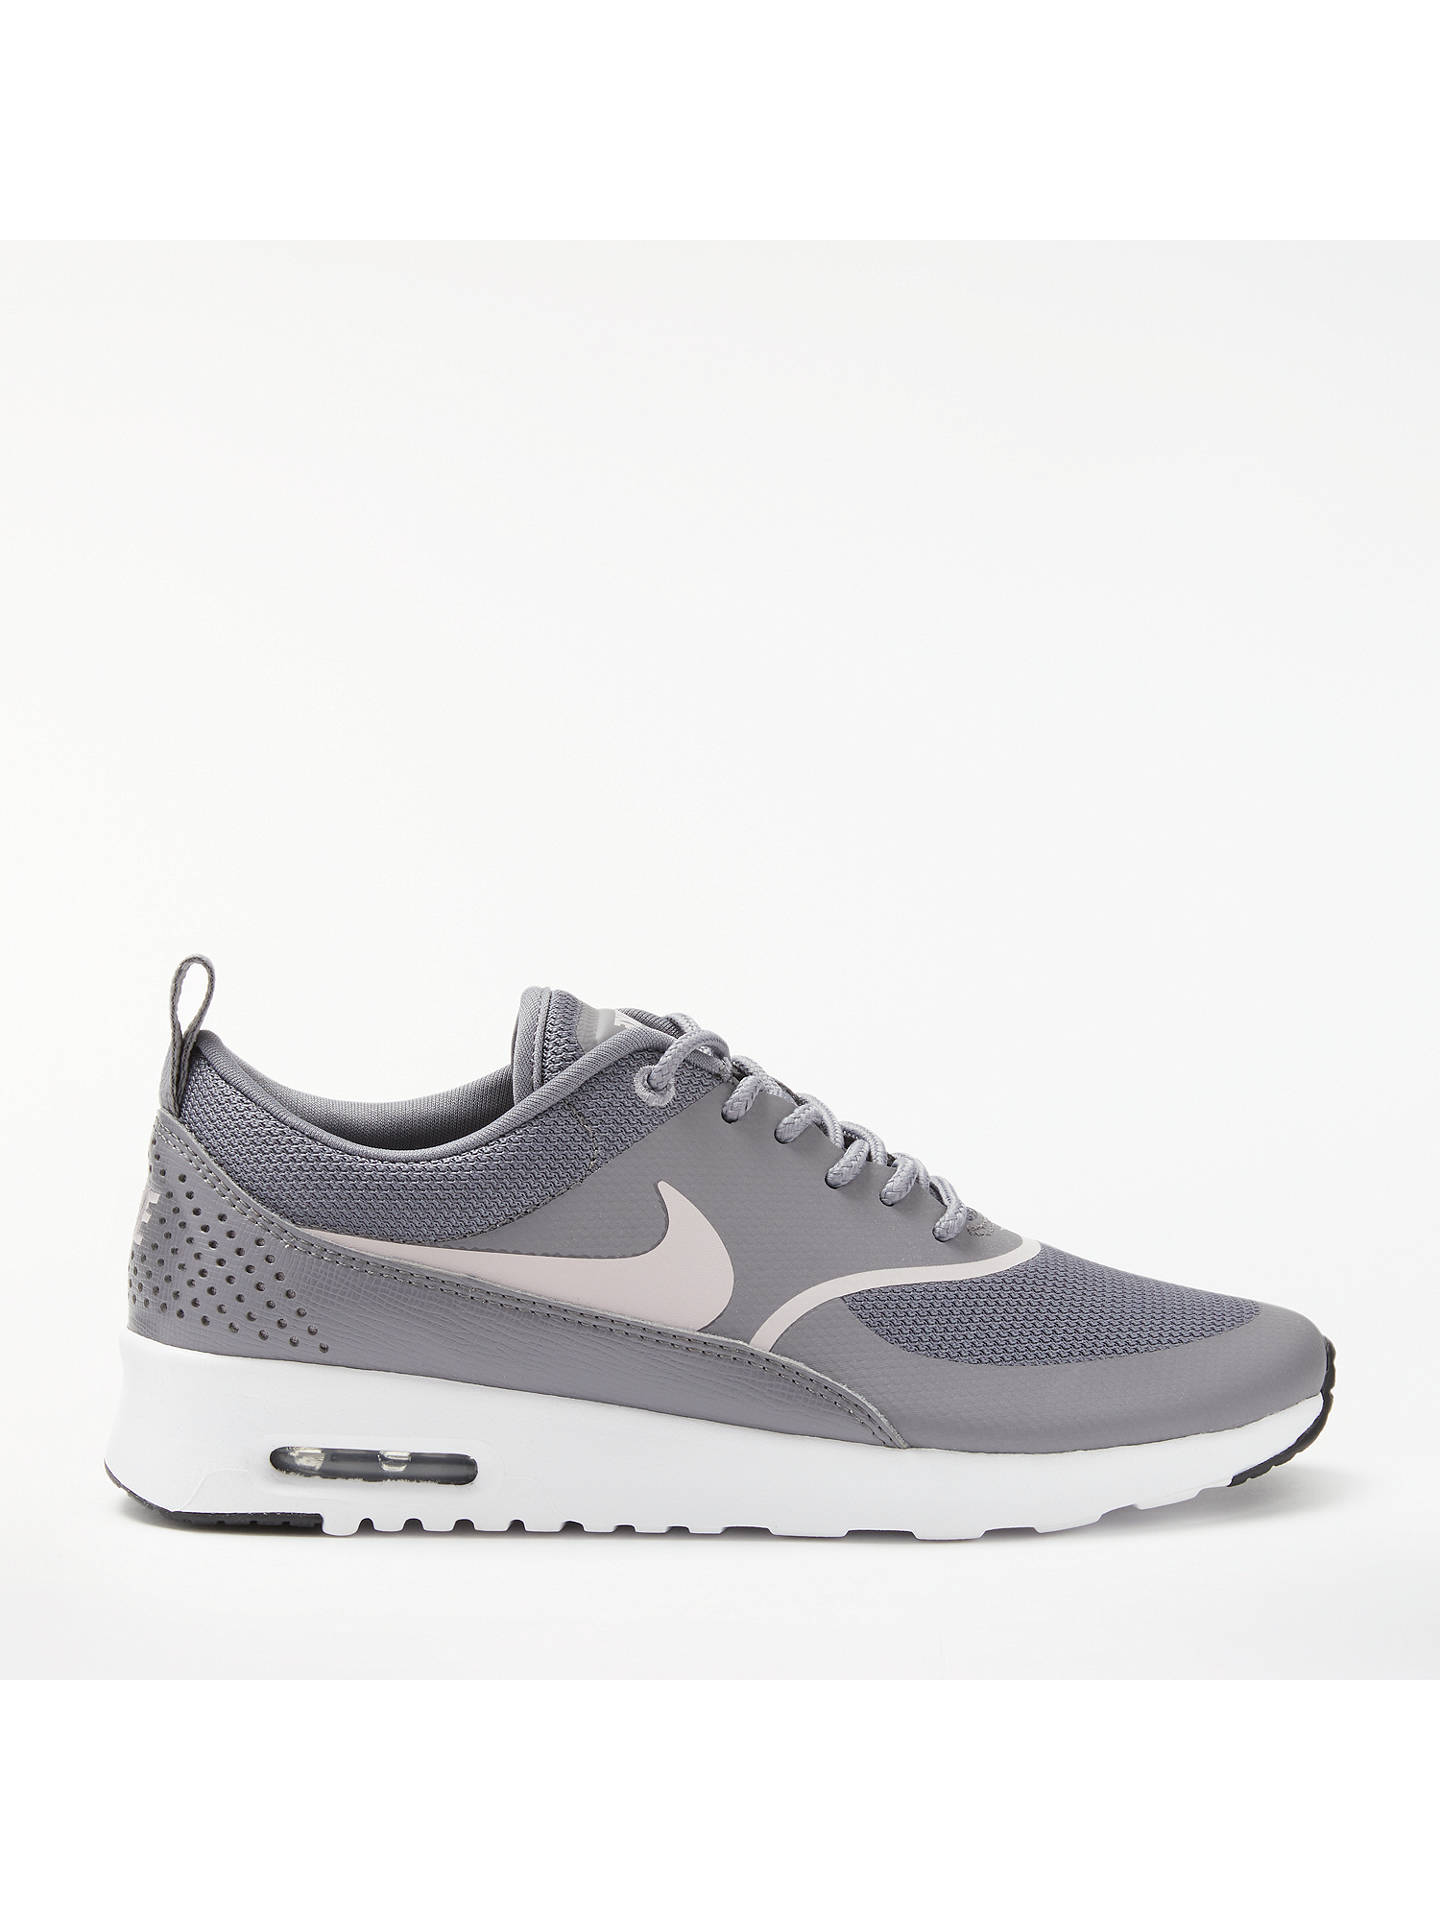 3336cdb998 Buy Nike Air Max Thea Women's Trainers, Grey, 4 Online at johnlewis. ...